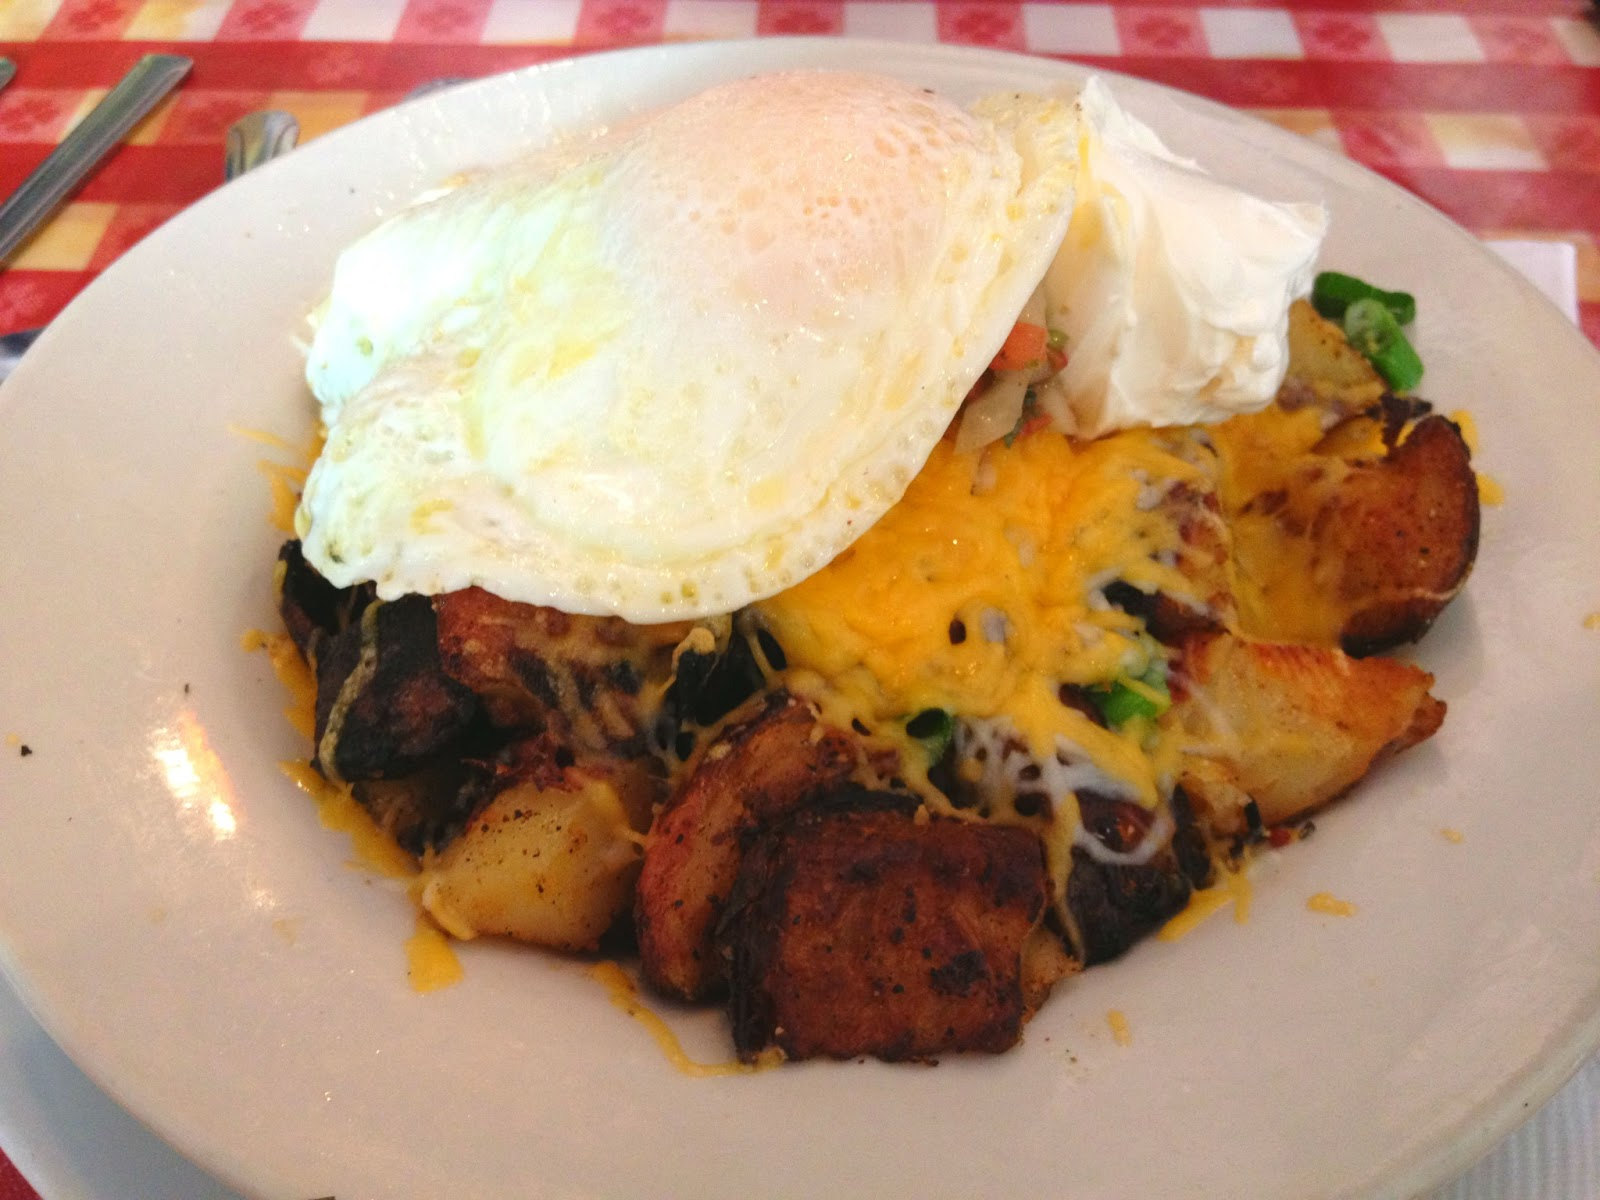 Home fries topped with cheese, bacon, salsa, and an over-easy egg with a dollop of sour cream